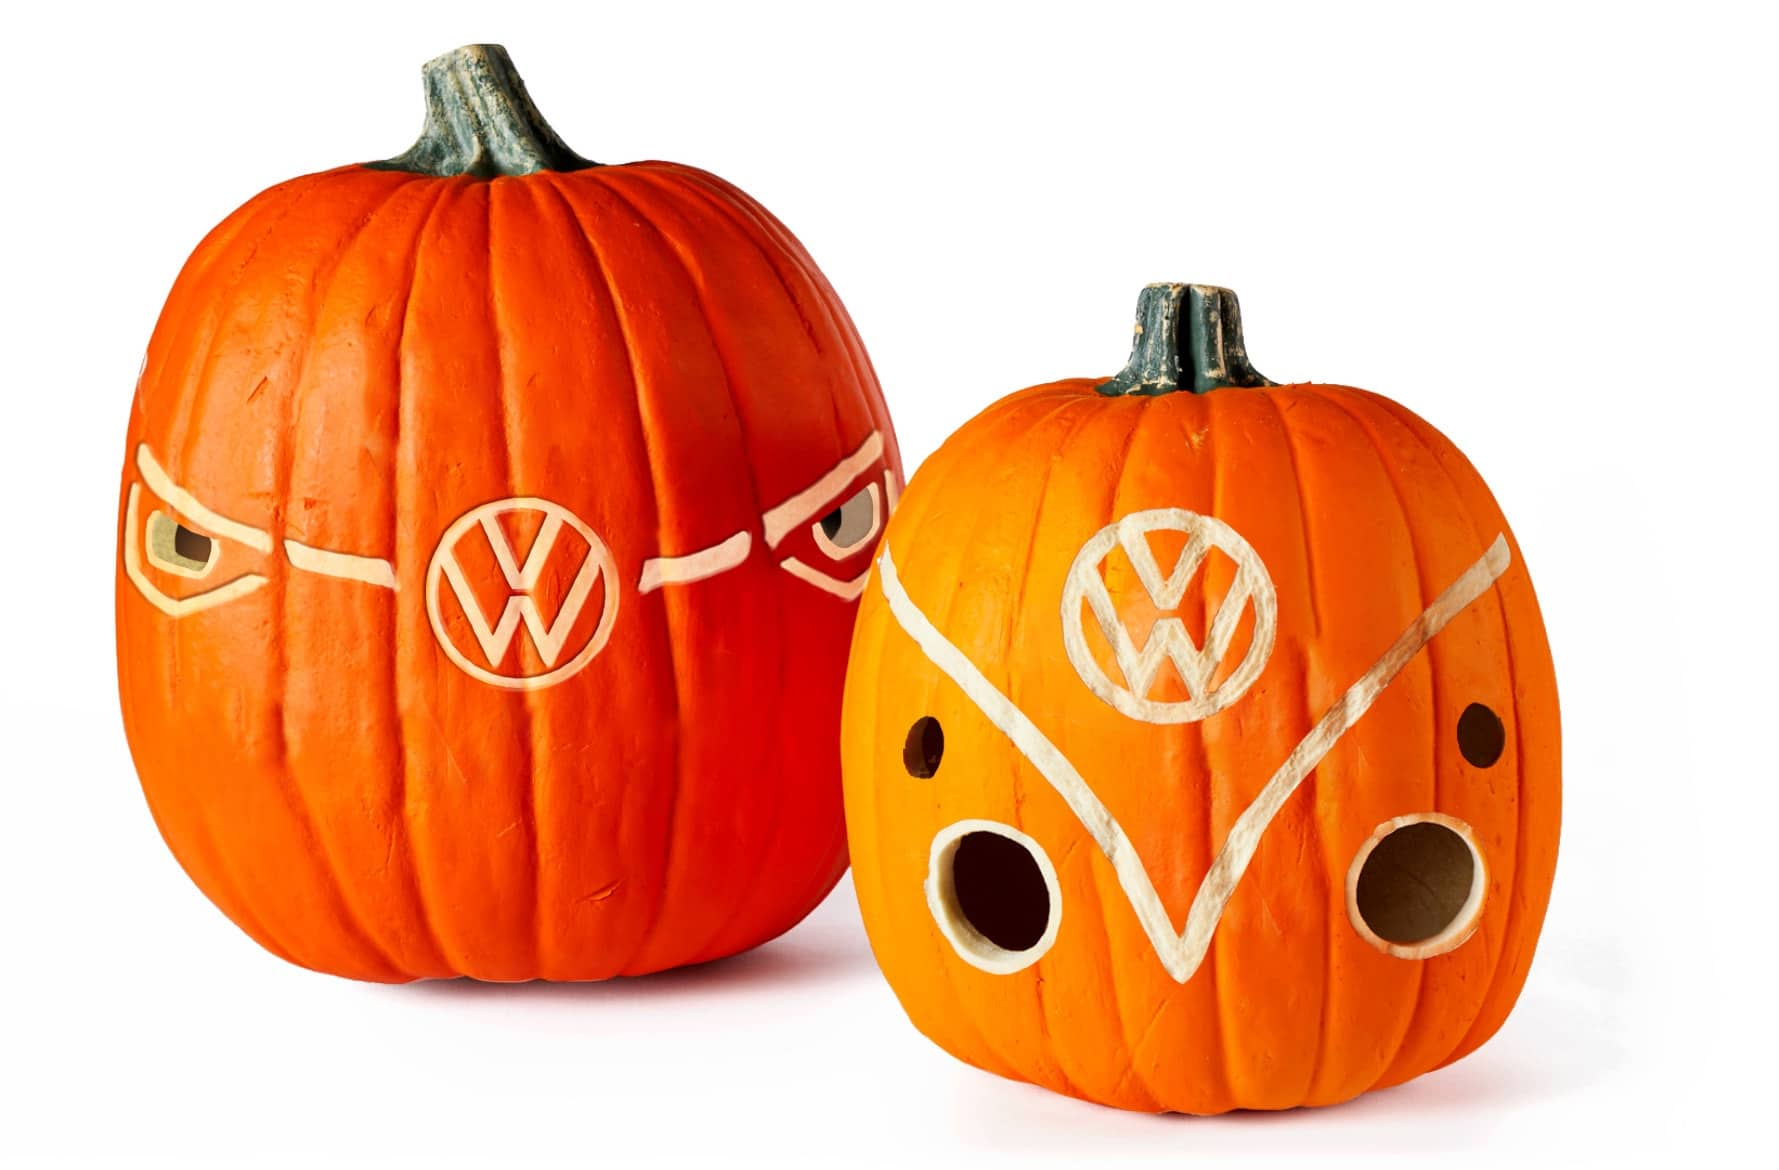 Enjoy These Free Car Themed Pumpkin Carving Patterns